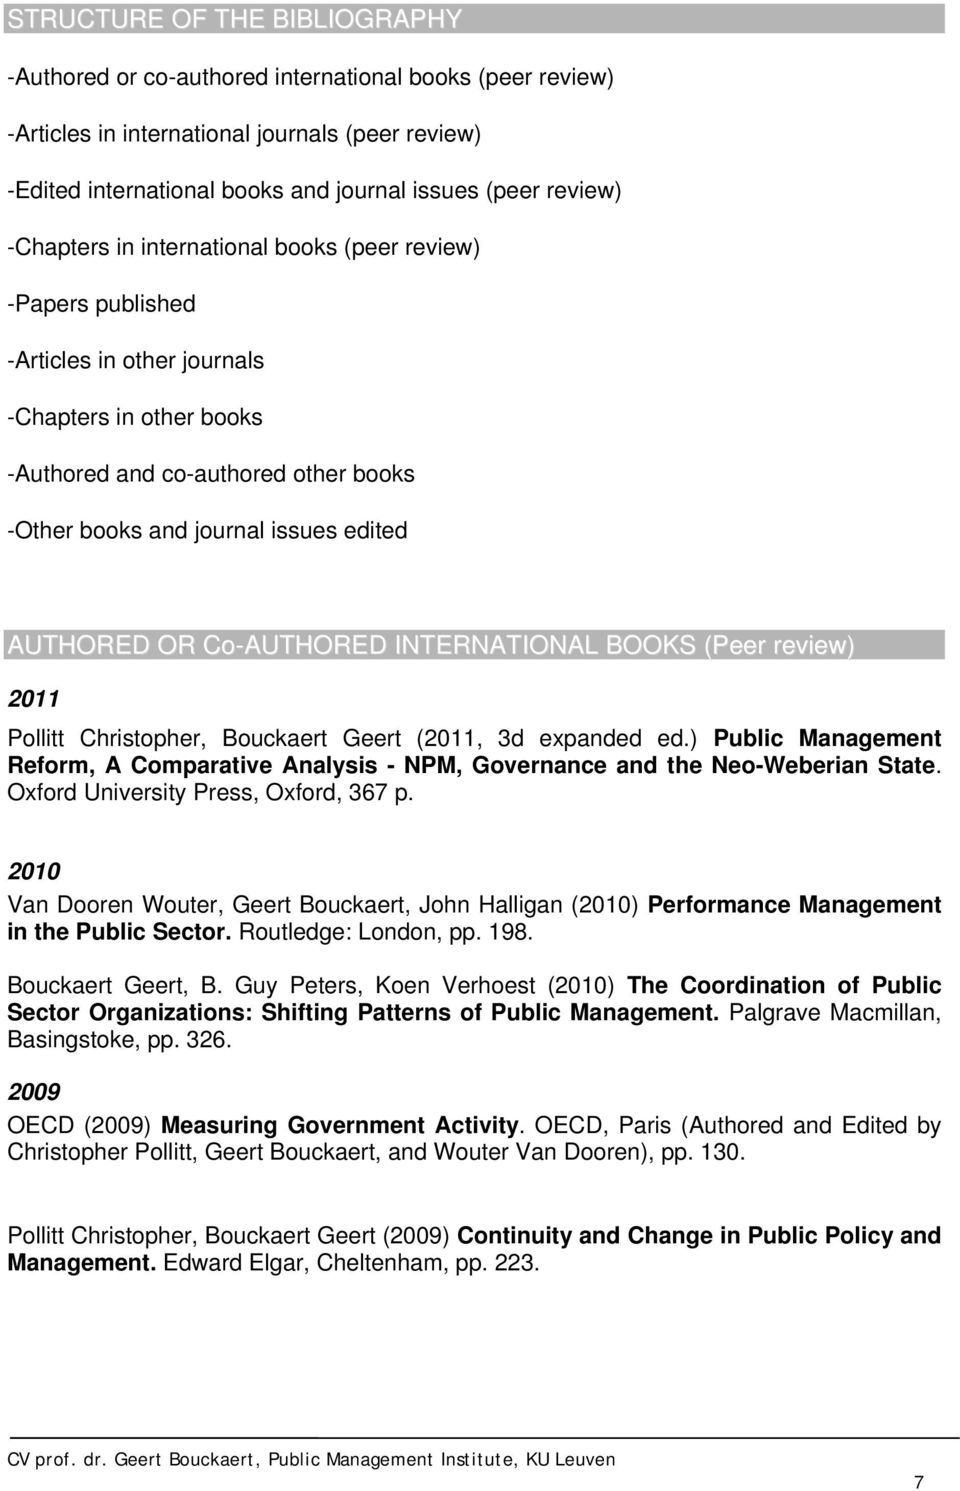 AUTHORED OR Co-AUTHORED INTERNATIONAL BOOKS (Peer review) 2011 Pollitt Christopher, Bouckaert Geert (2011, 3d expanded ed.